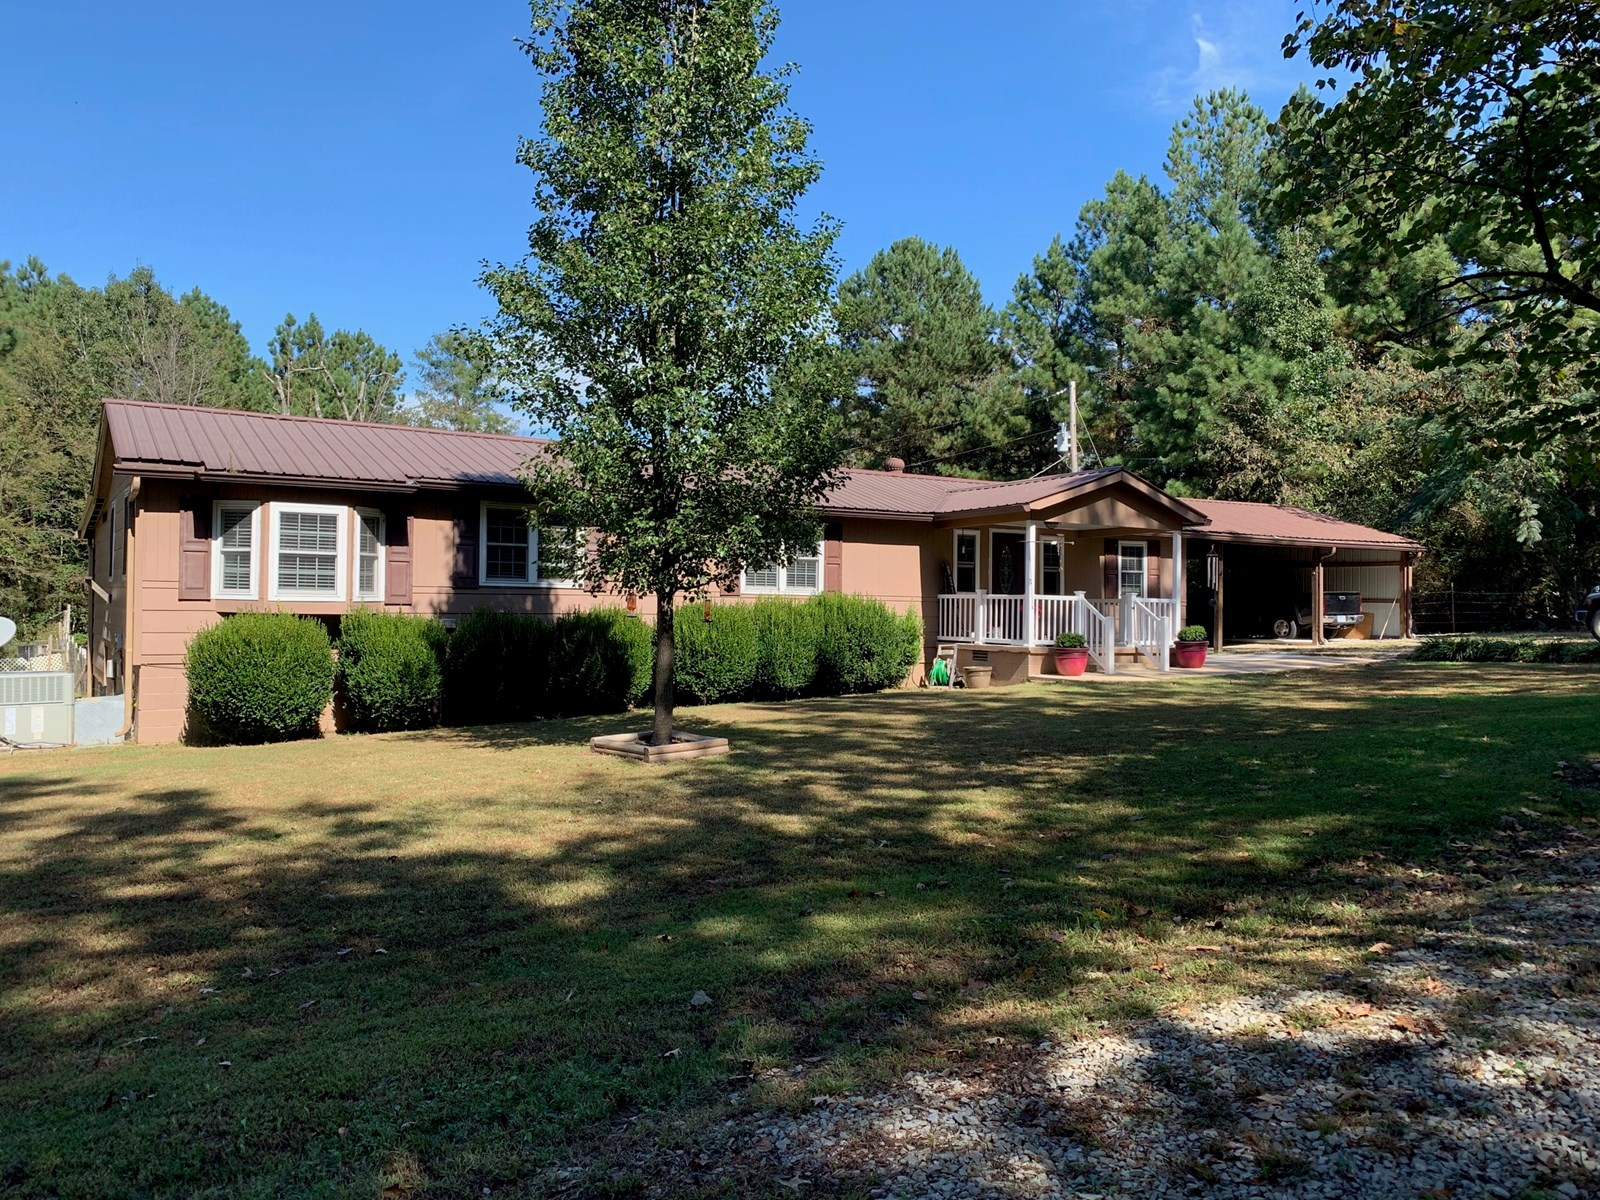 Country Home on 4 acres m/l near Pocahontas, AR 4BR/3BA